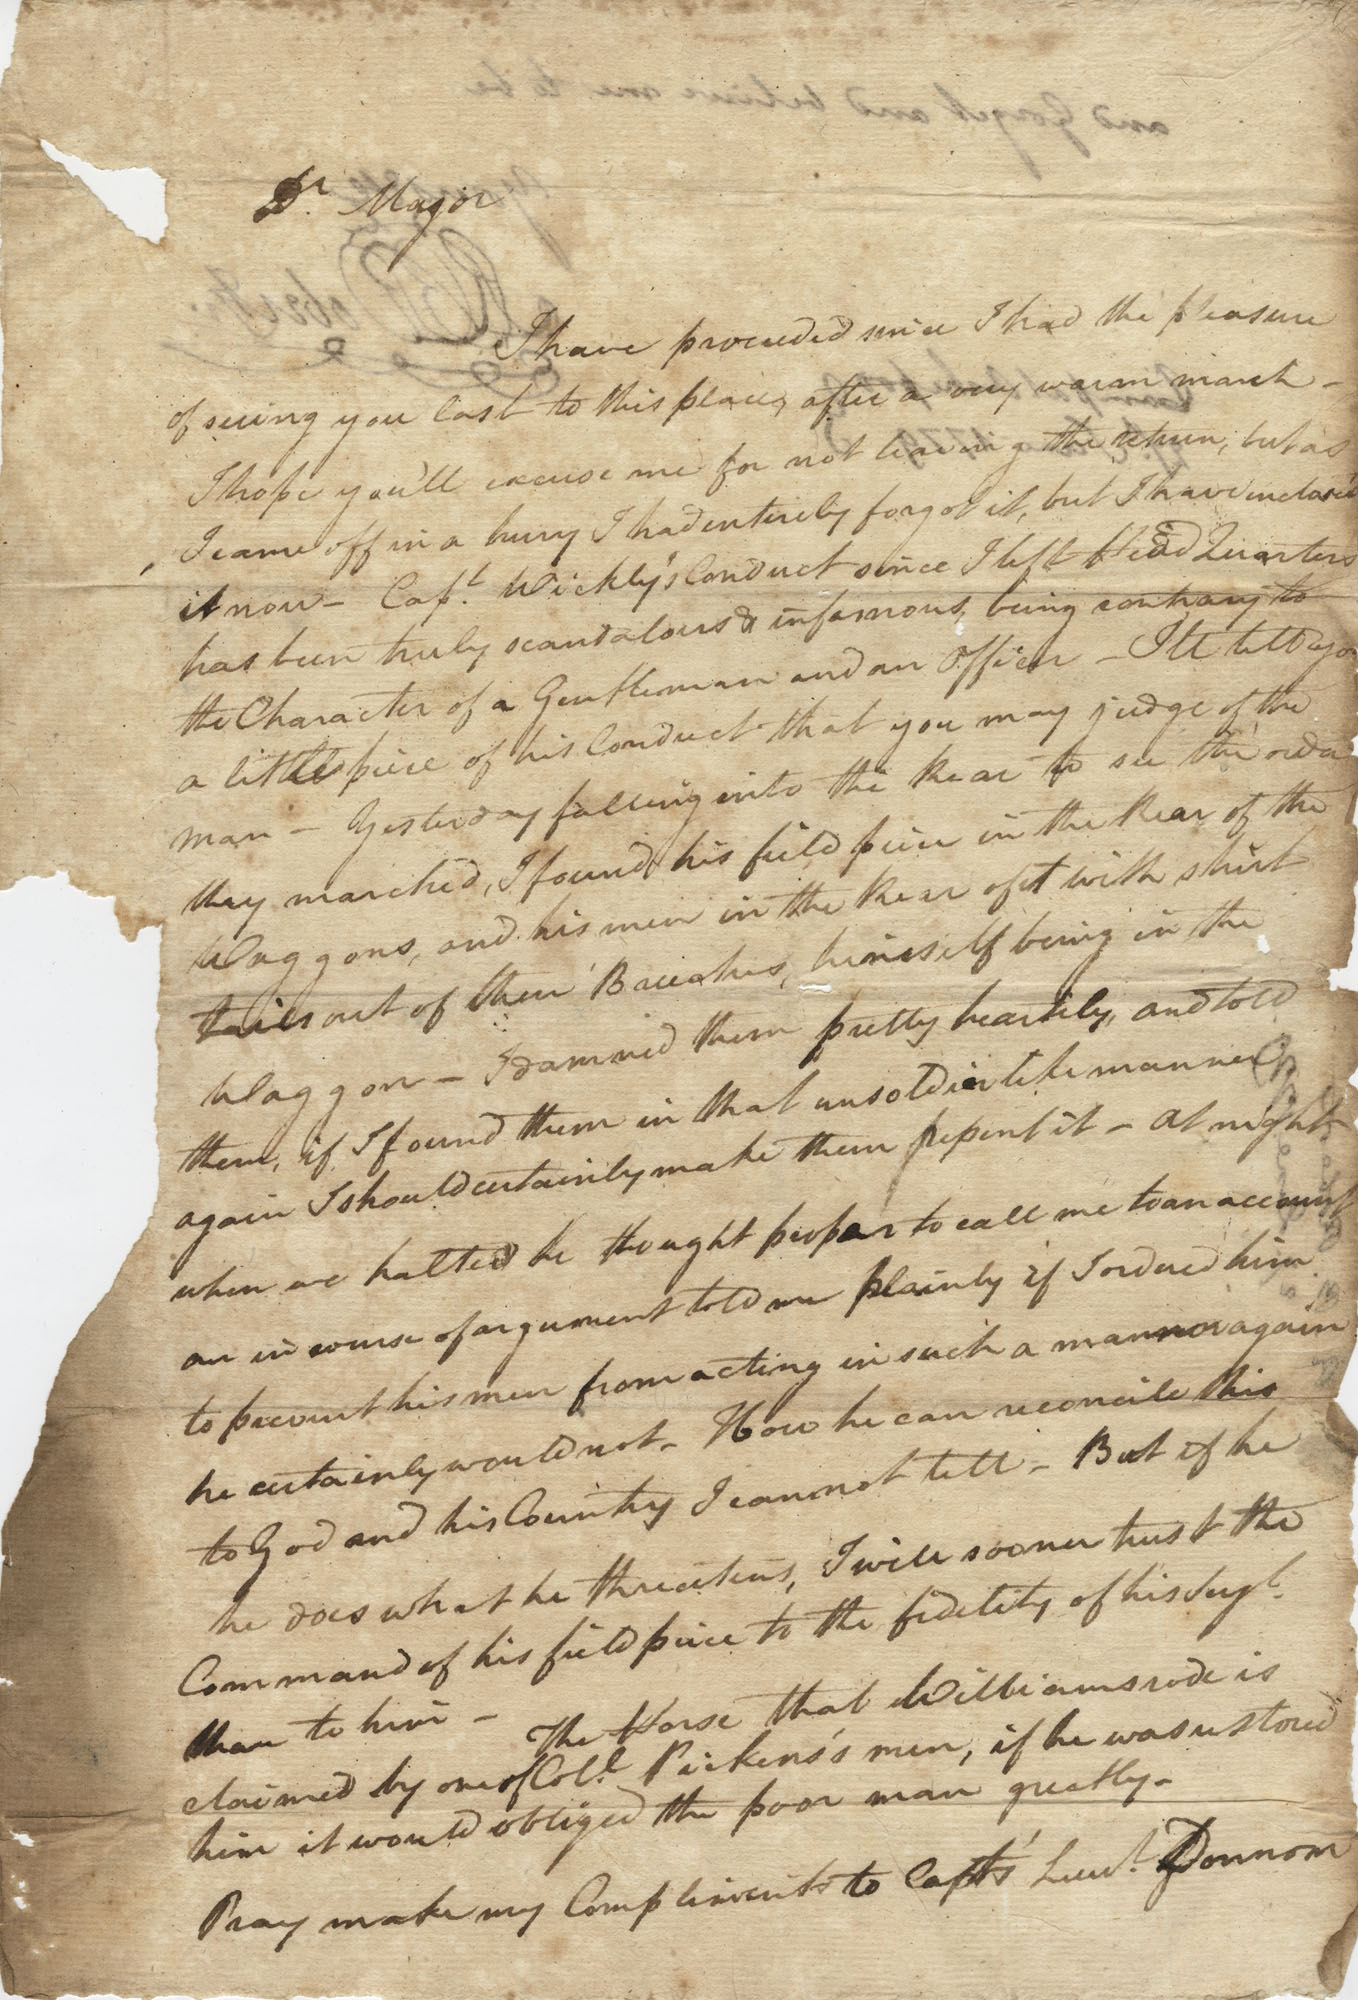 Letter from R.B. Roberts, June 27, 1779